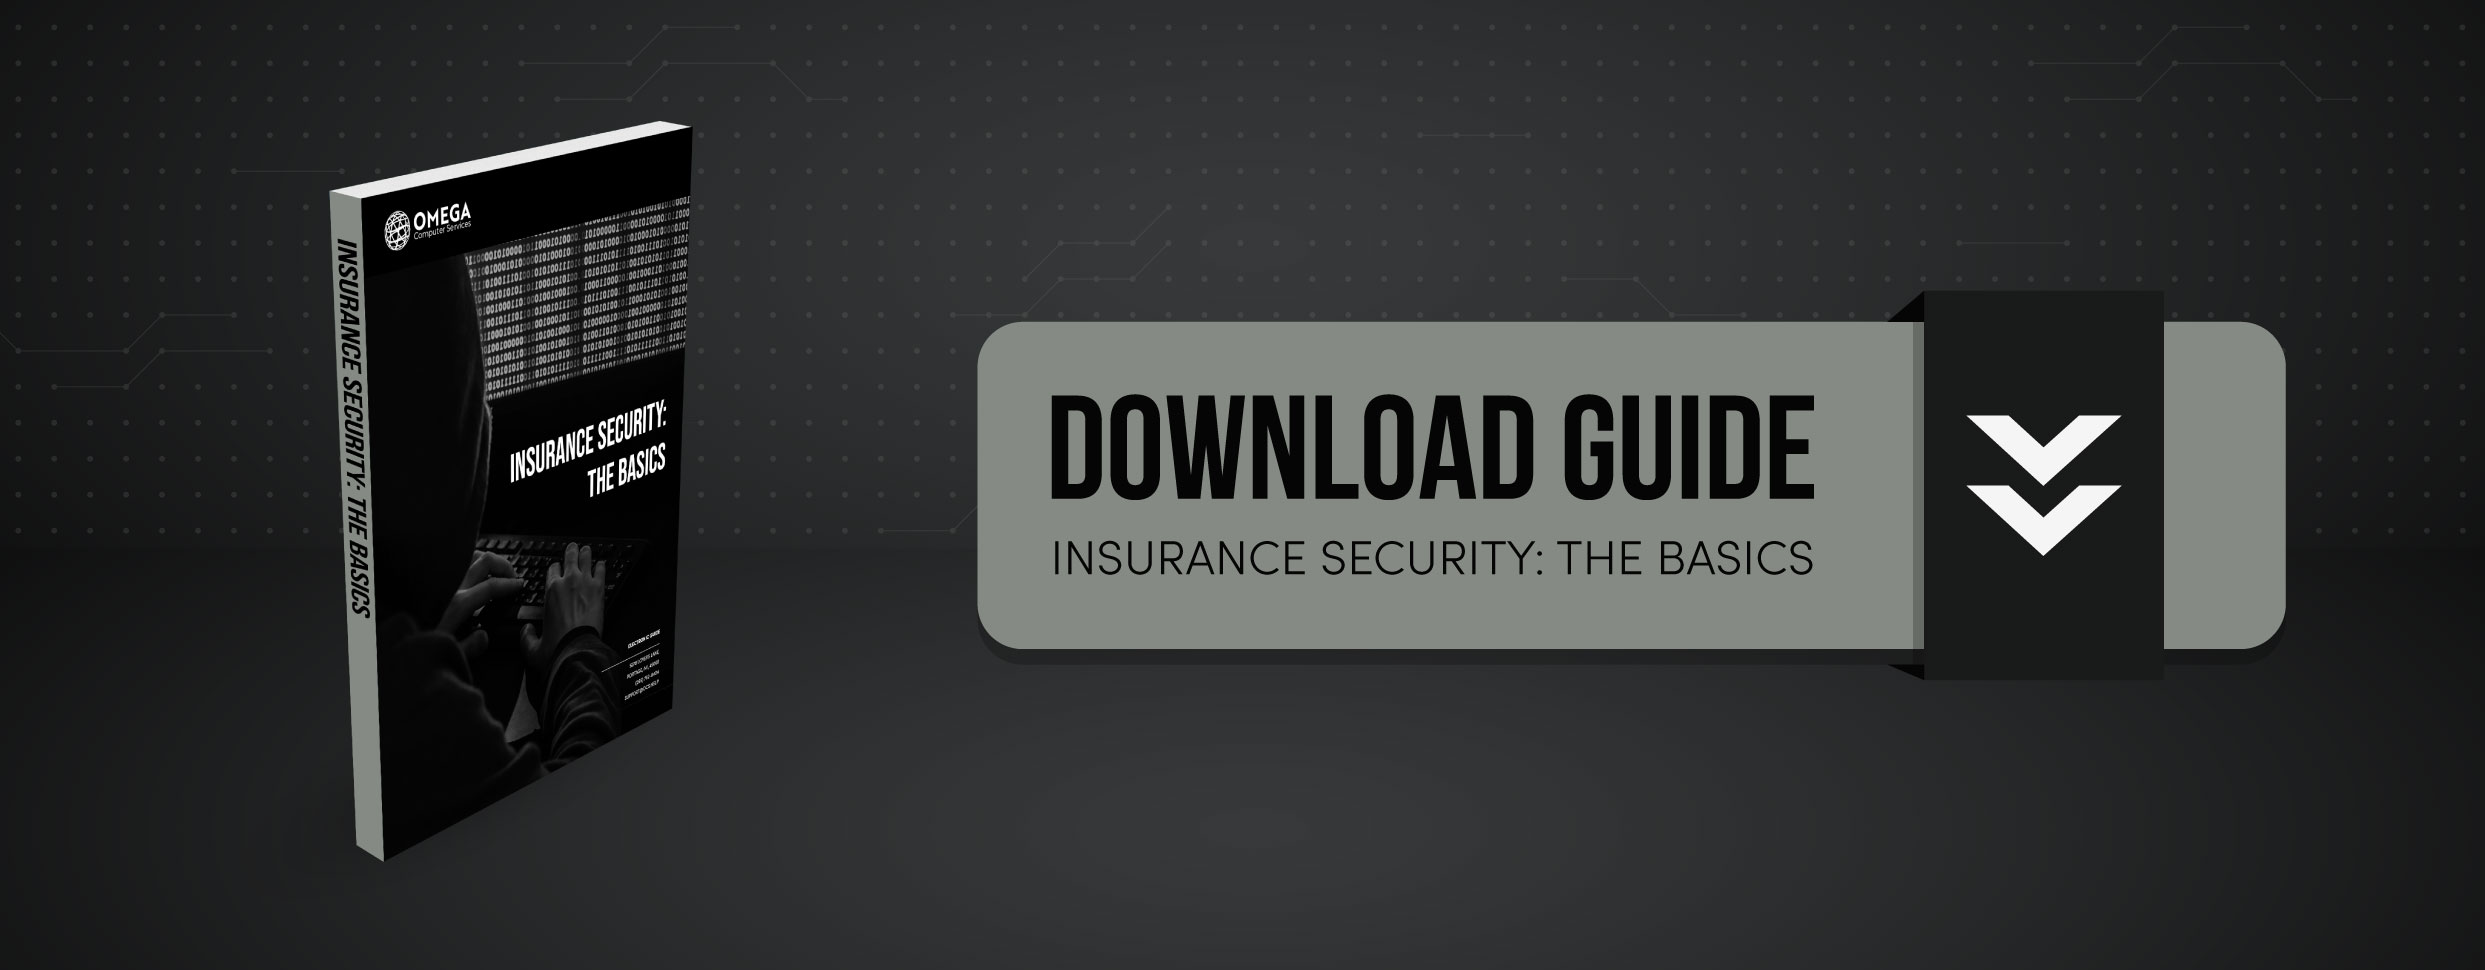 smart contract, bitcoin, blockchain technology, insurance security guide